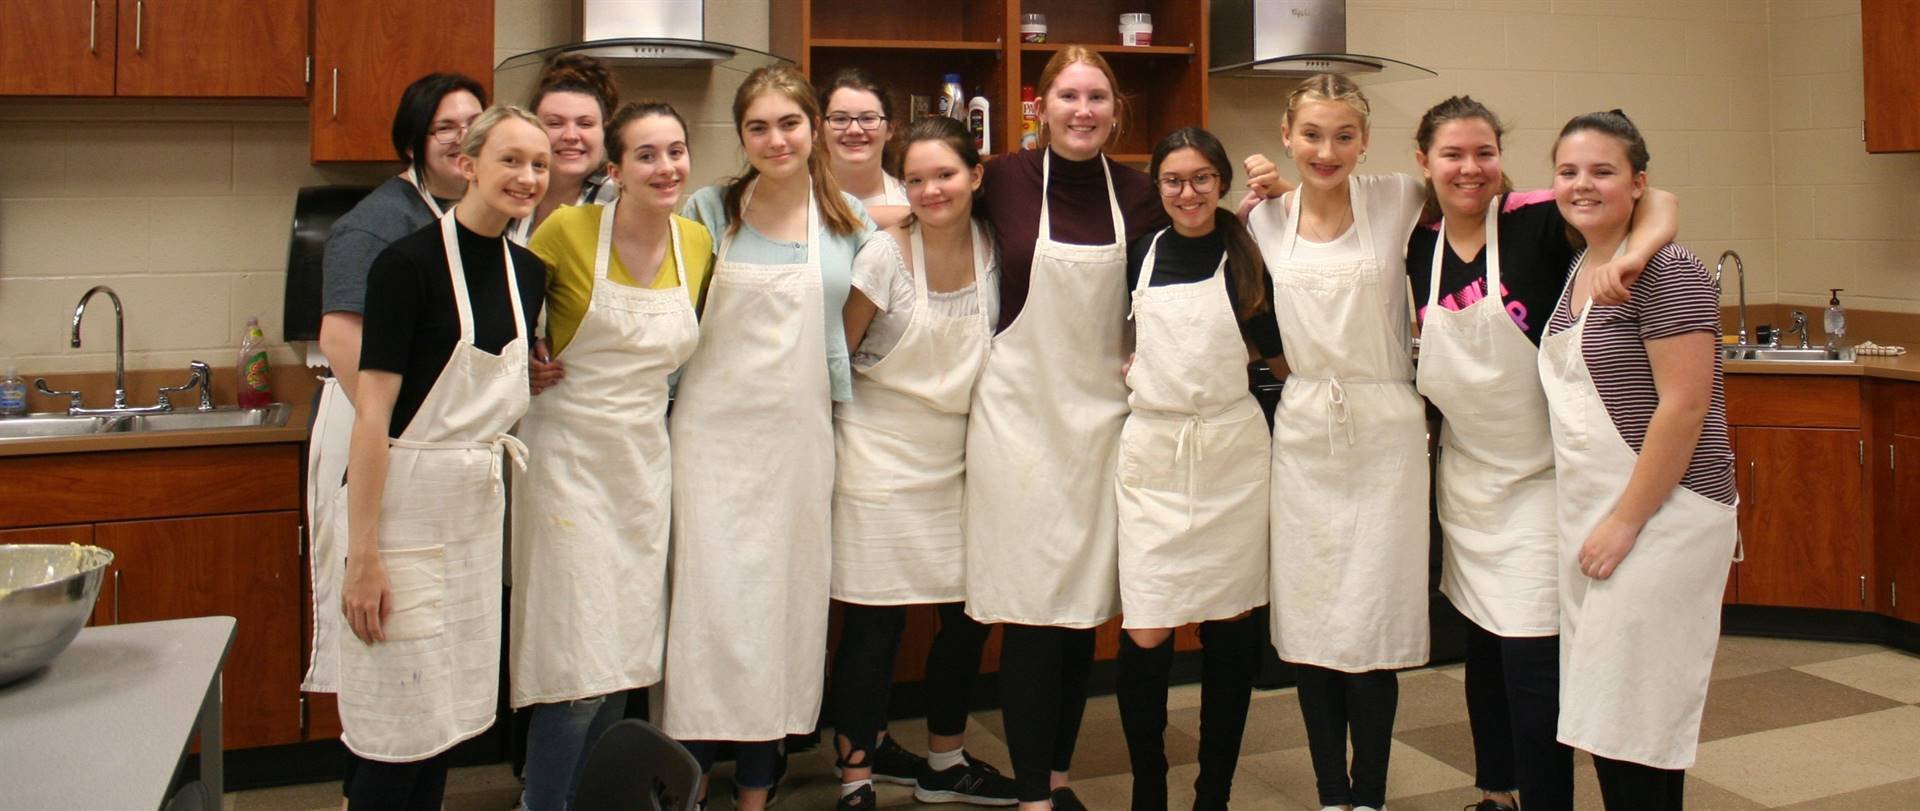 FCCLA and Global Foods students making the Veterans' Day breakfast.